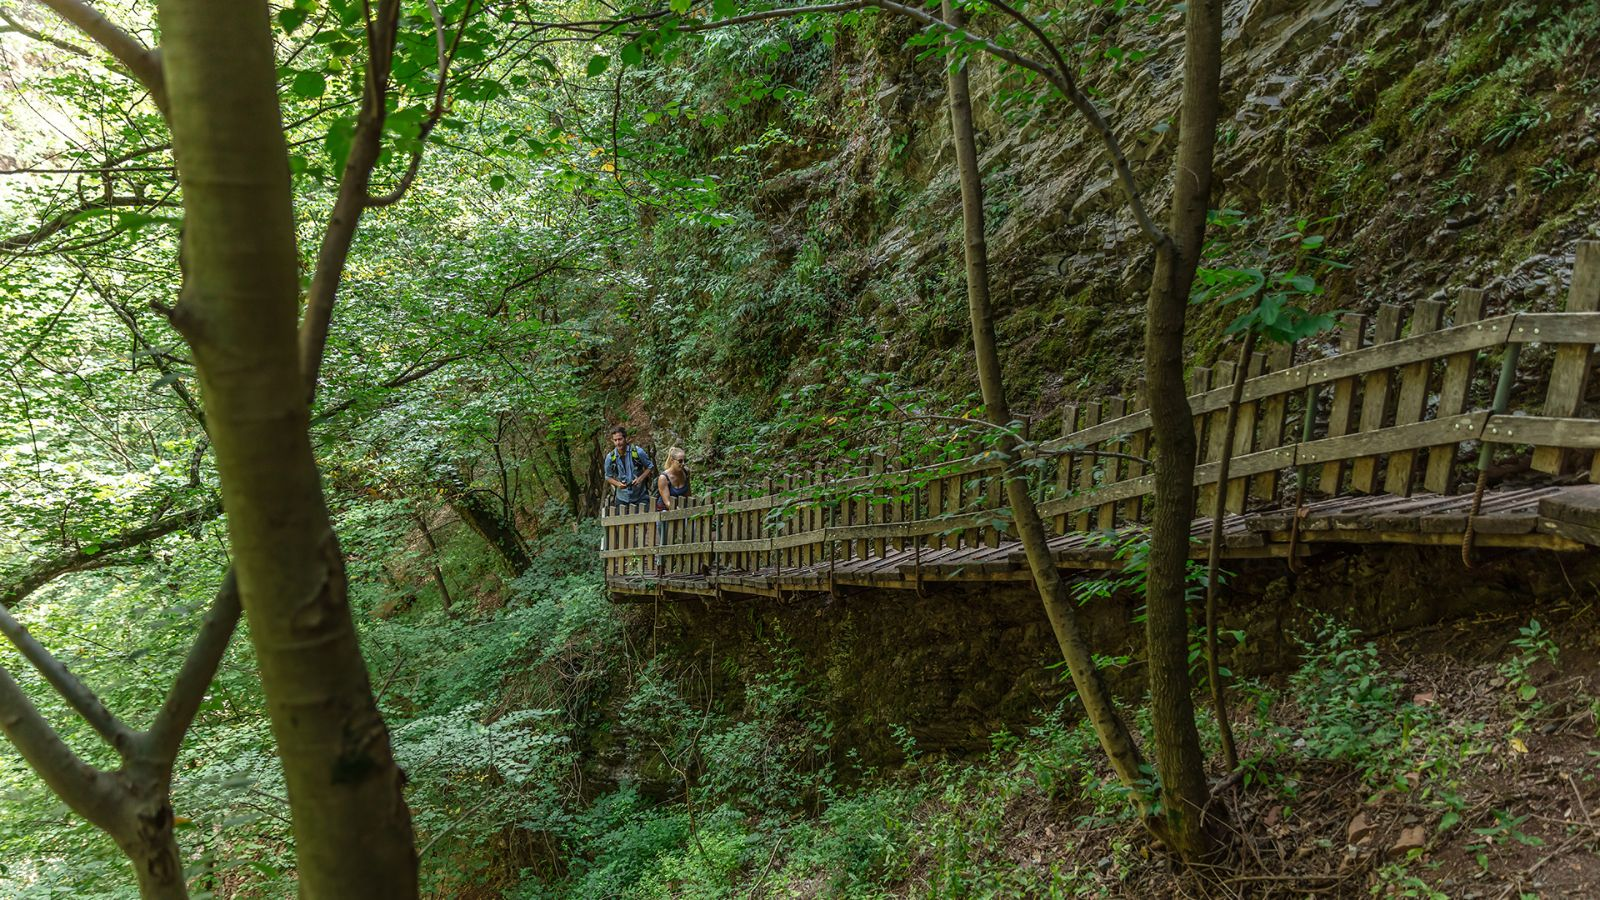 Hiking trail in the Breggia Gorge Park.